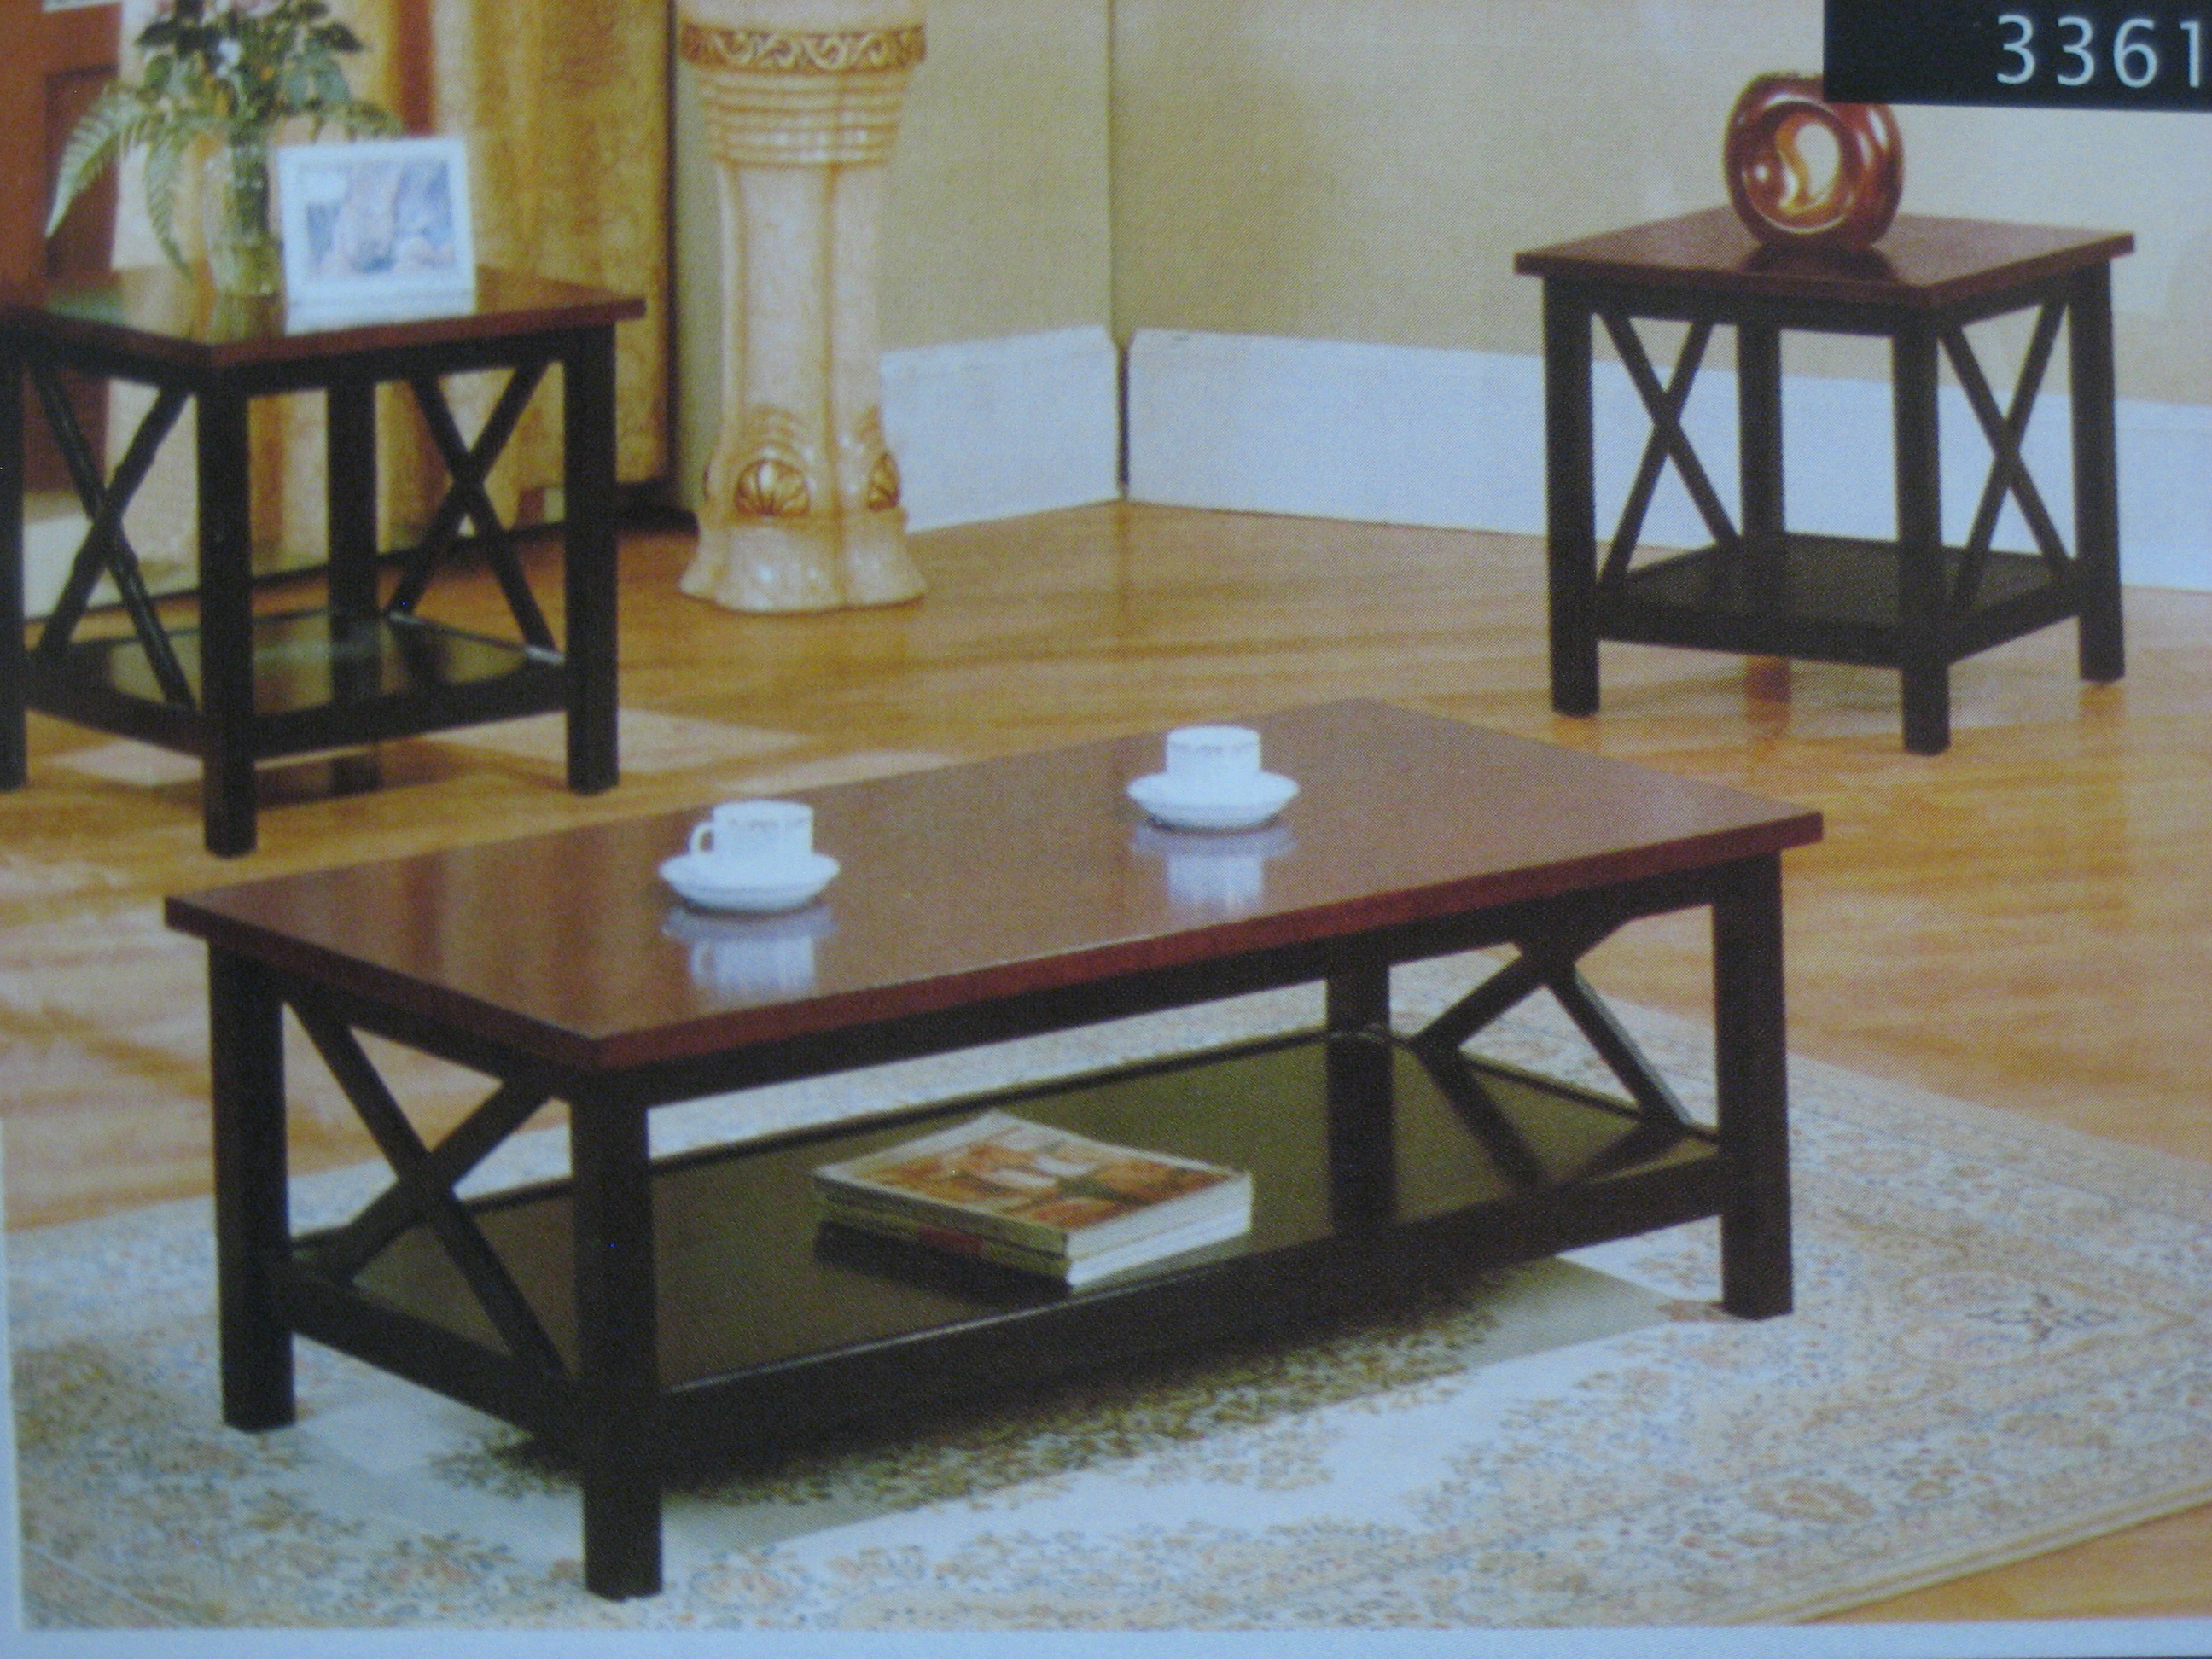 coffee tables ideas modern table and end set ashley rich dark mocha contemporary wood furniture curved metal legs dining room designs paula deen sauder shoal creek bedroom antique